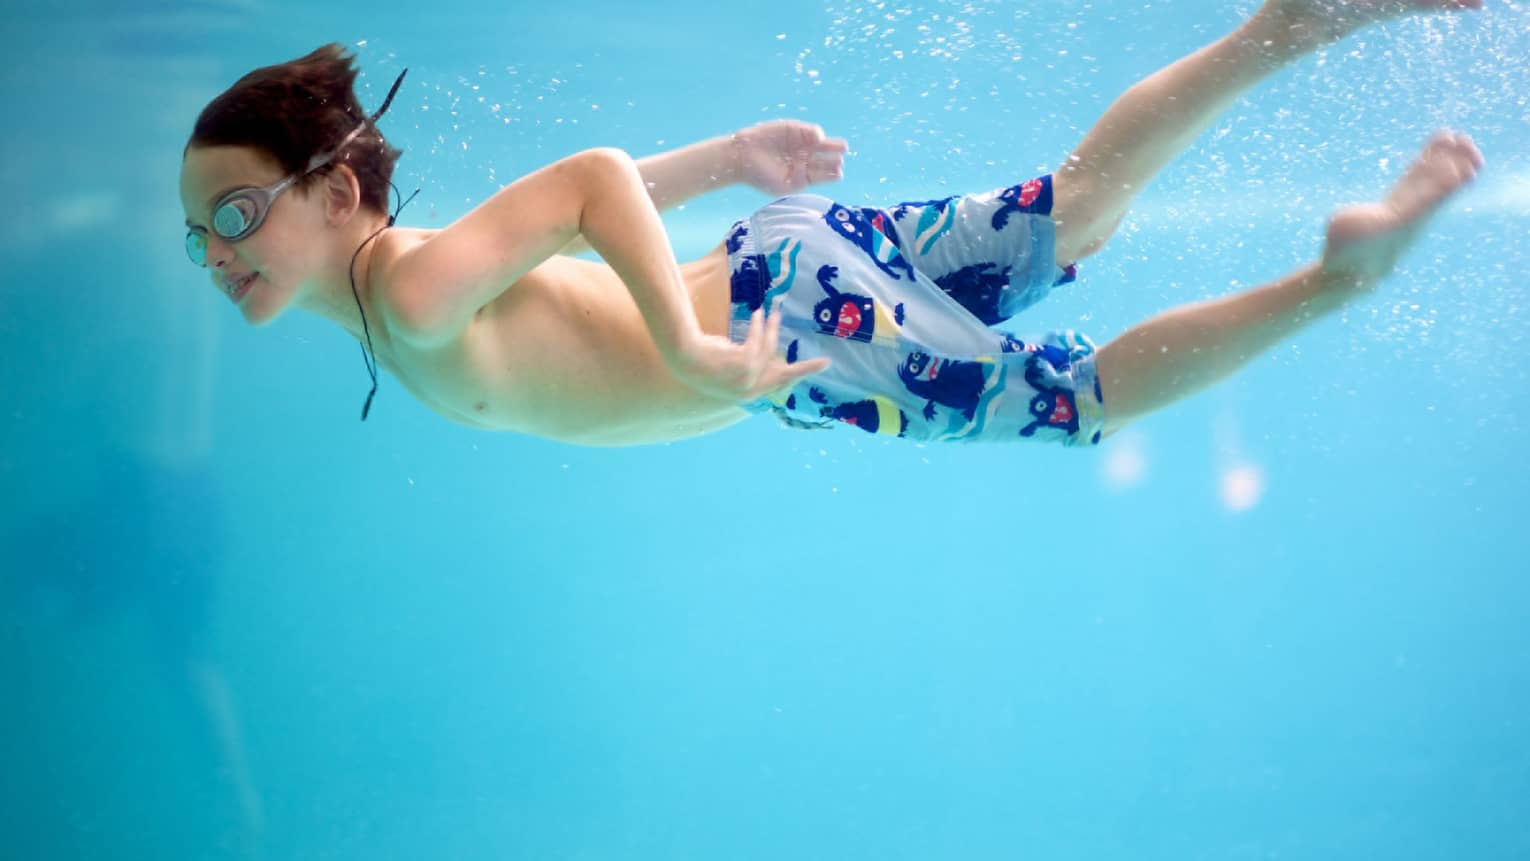 Underwater shot of a boy swimming in a pool with goggles and swim trunks